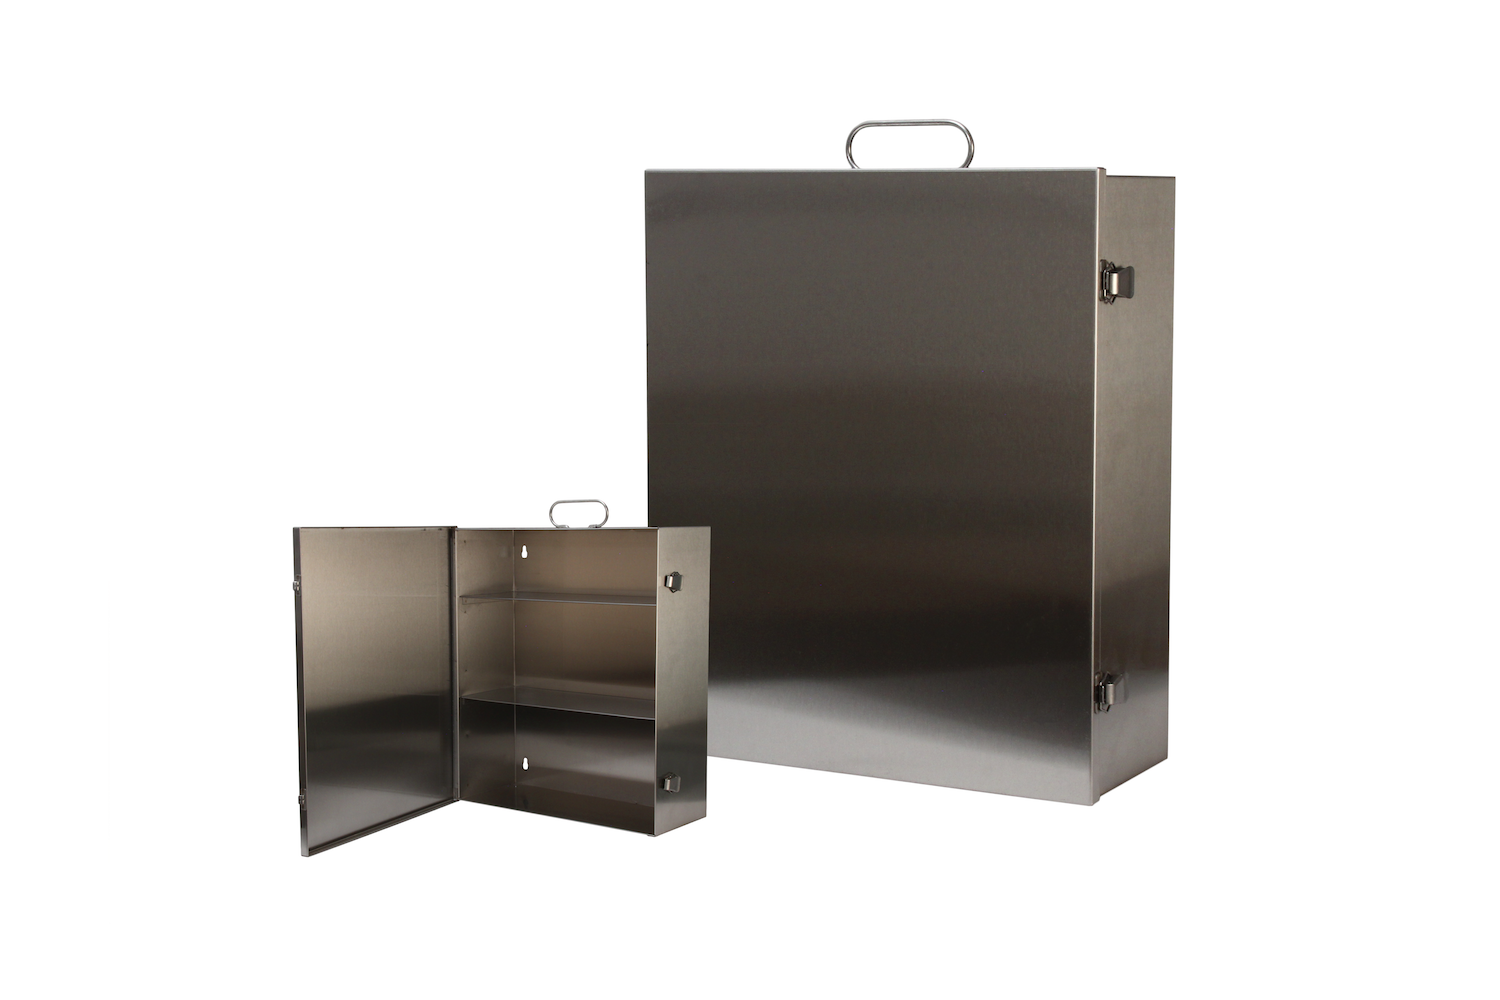 """#151 First Aid Cabinet (3 Shelf) / Stainless   Inside dimensions 13 1/2 x 16 x 5 1/2"""" Shelf spacing top to bottom 4""""—6""""—6 1/8"""" 22 ga stainless steel / individual weight 10 1/2 lbs Individual carton Max QTY per 40 x 48"""" pallet—66"""